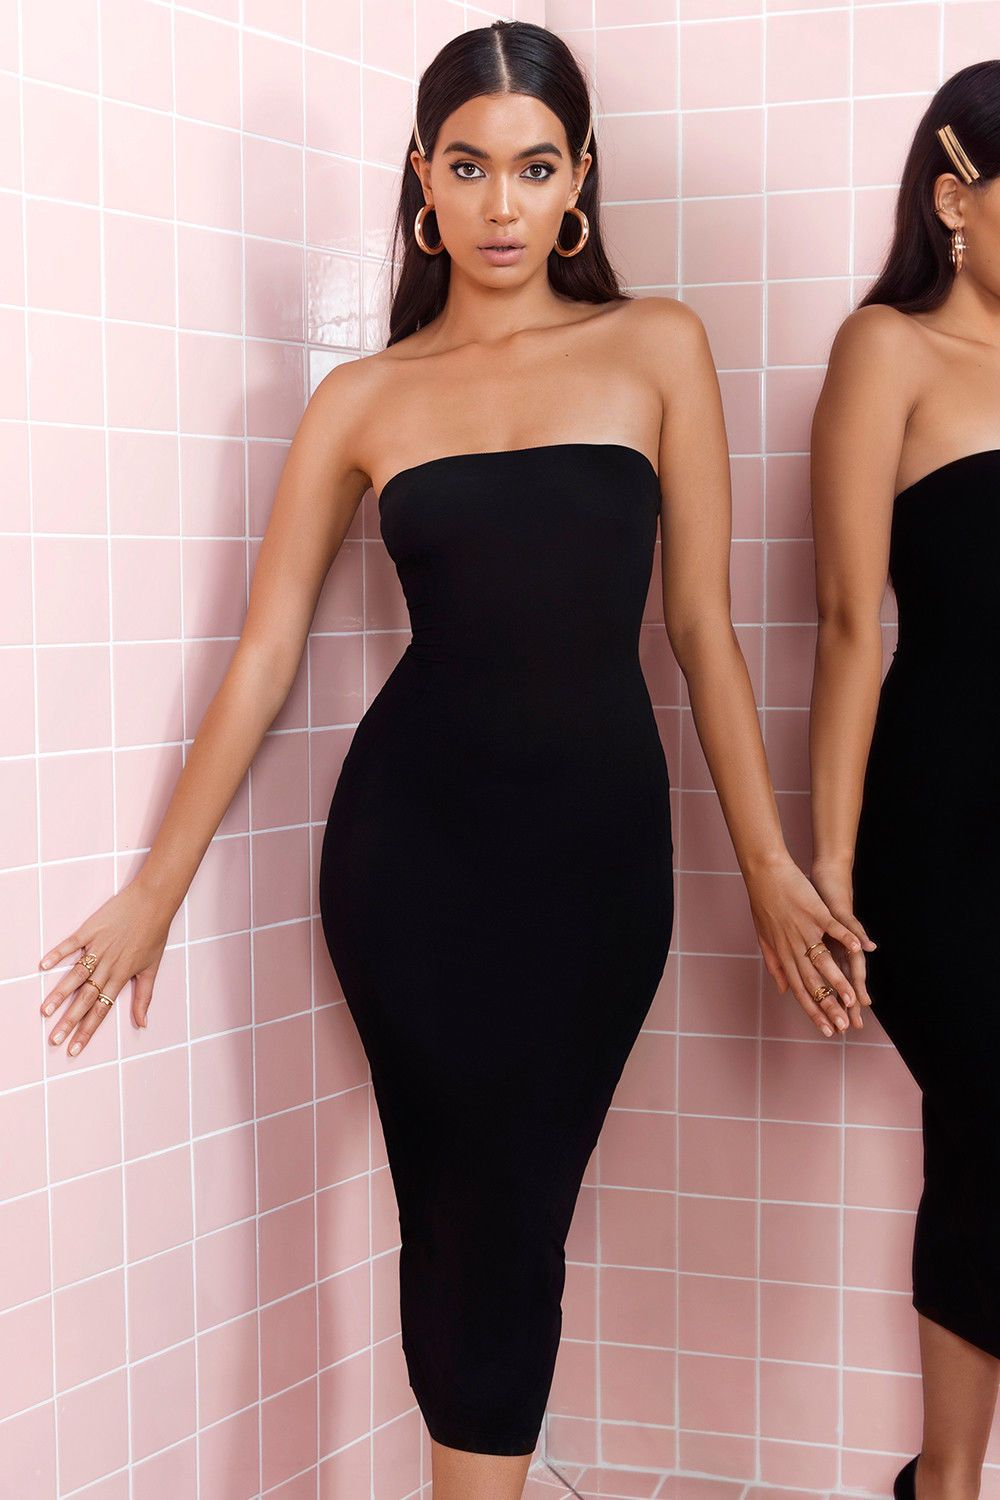 e97460c6231 HOUSE OF CB  LUCIANA  BLACK STRAPLESS SEAMLESS KNIT DRESS